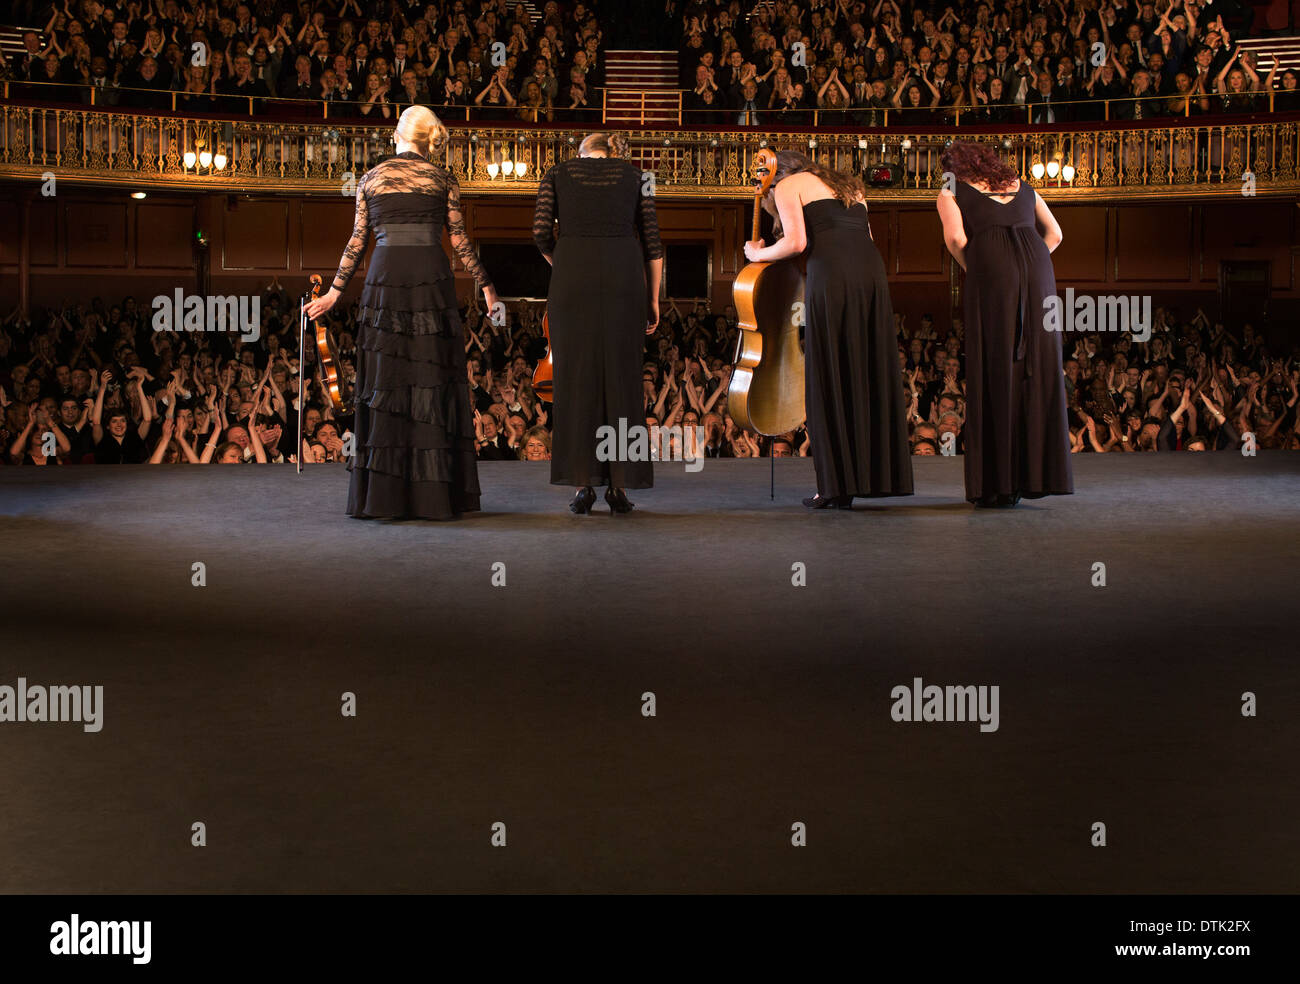 Quartet bowing on stage in theater - Stock Image